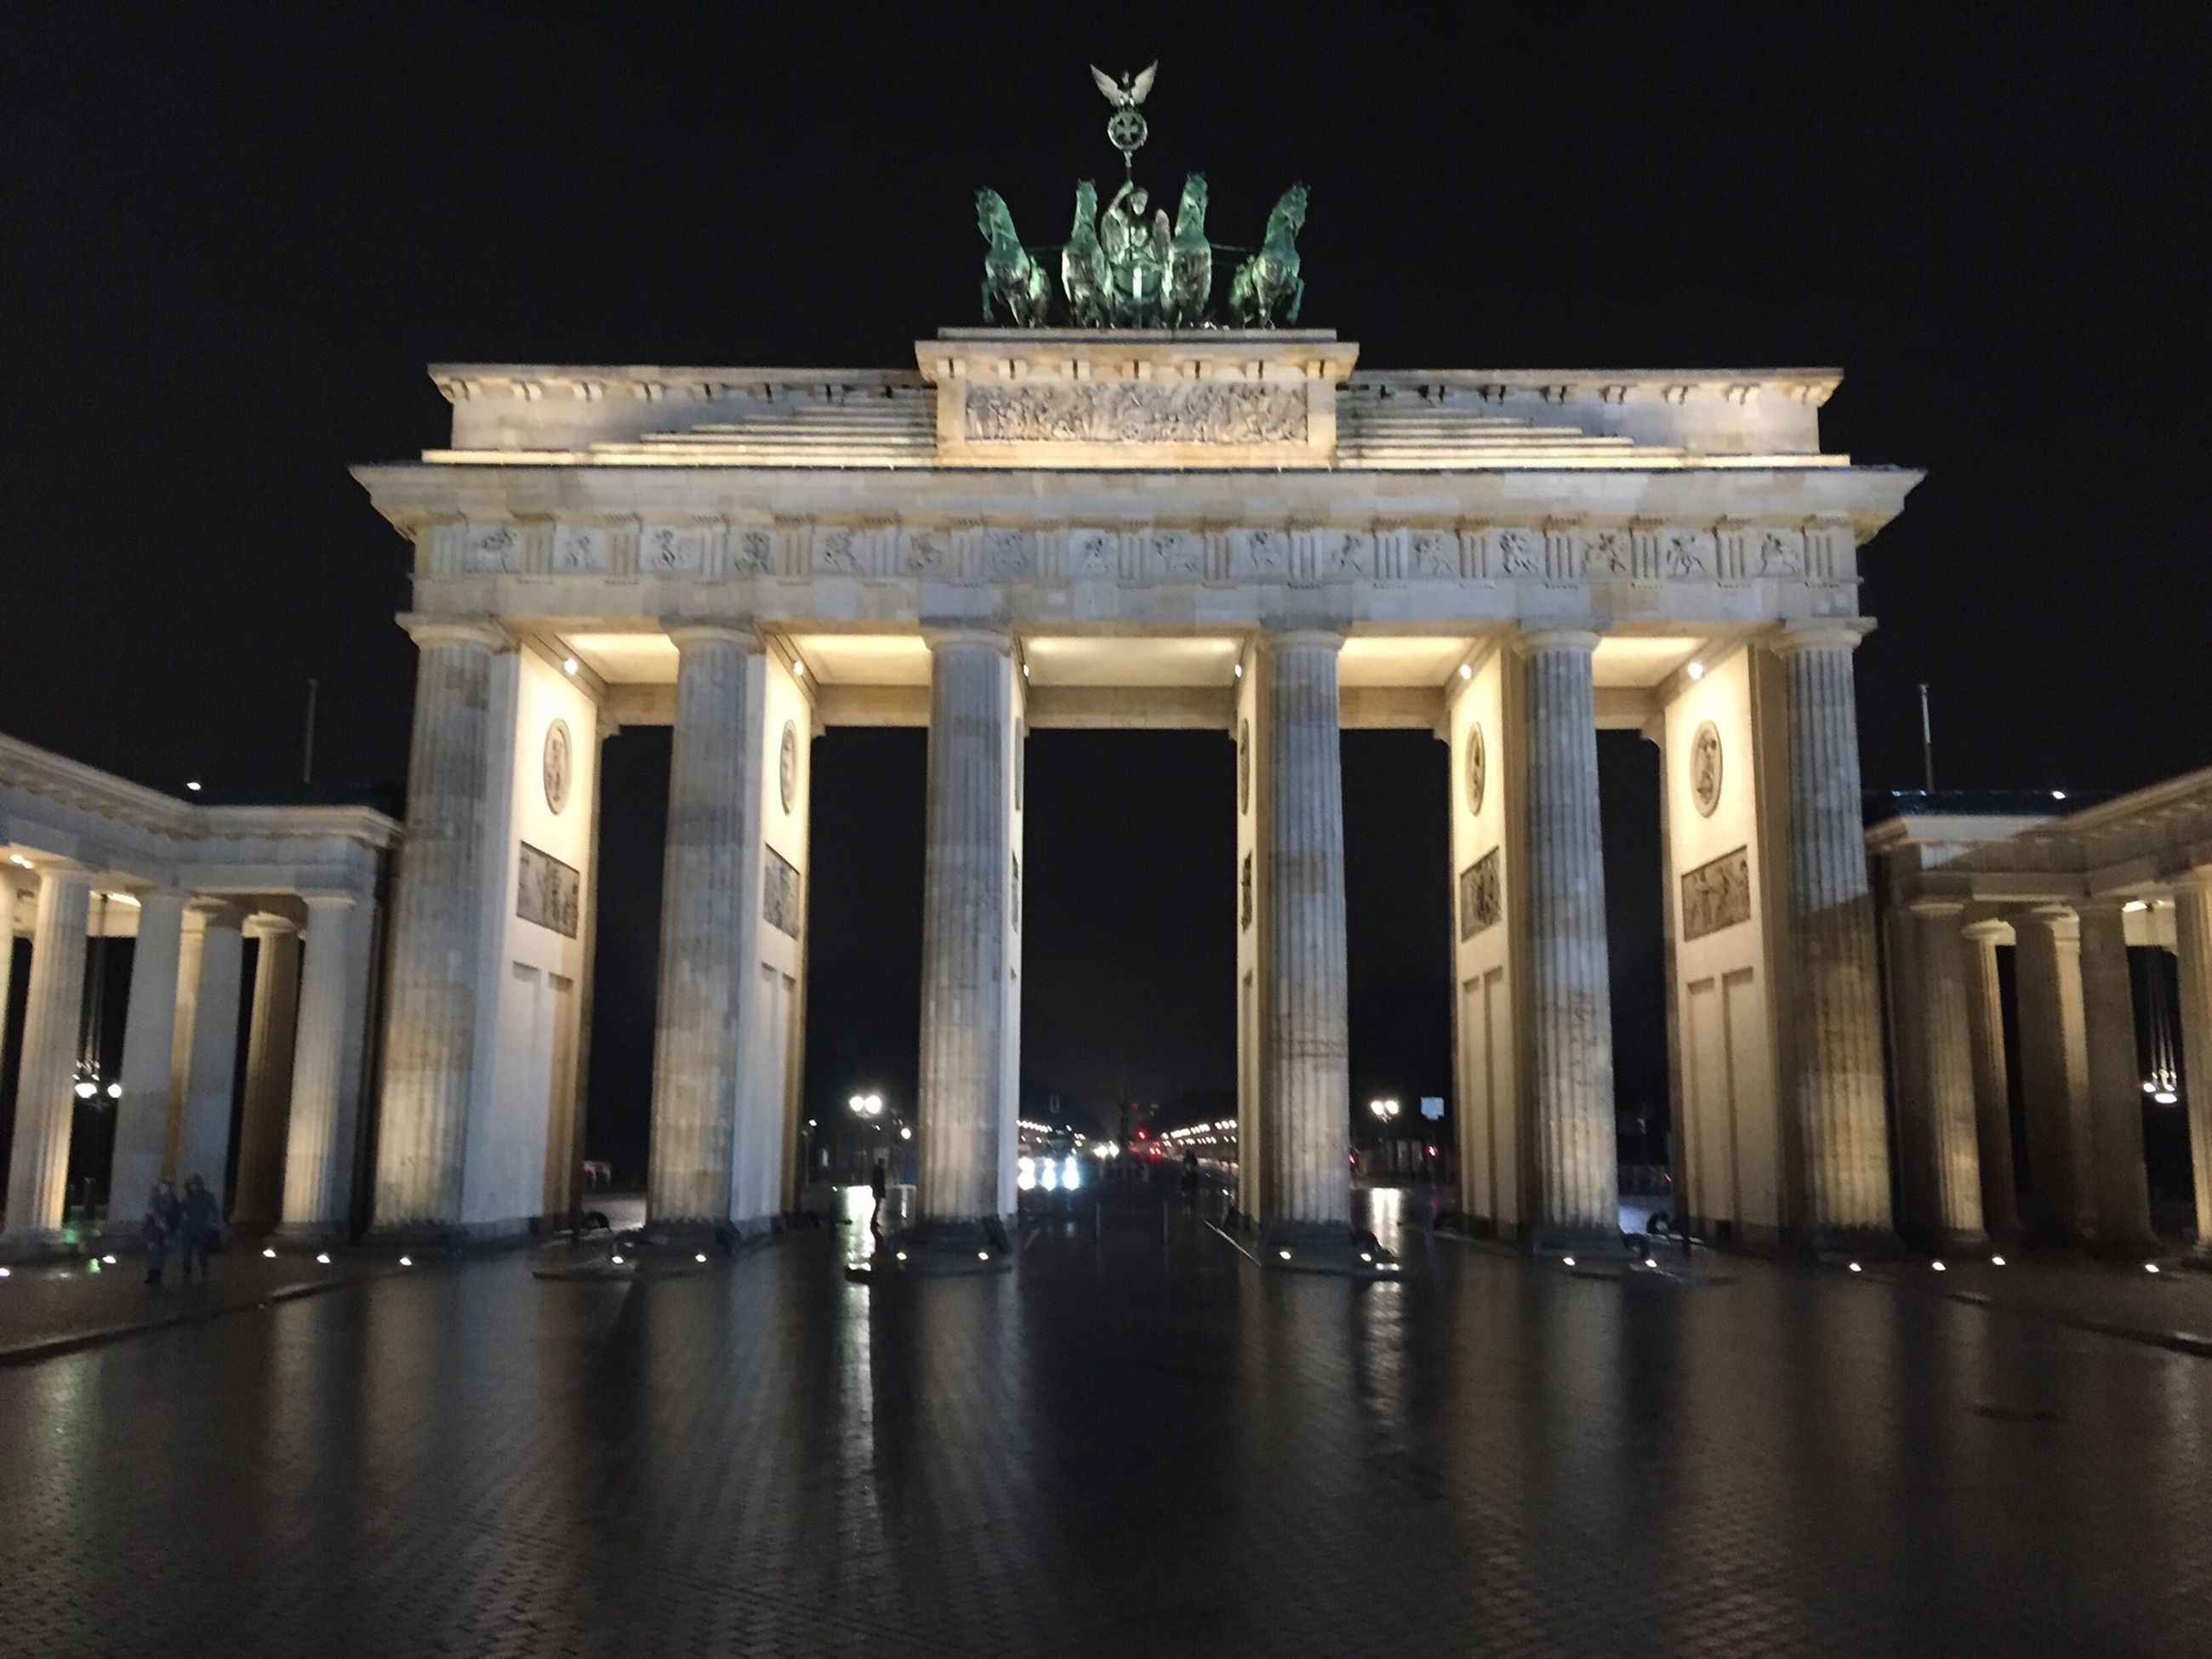 architecture, built structure, night, building exterior, architectural column, famous place, history, travel destinations, illuminated, tourism, international landmark, column, statue, travel, capital cities, sculpture, facade, pillar, city, art and craft